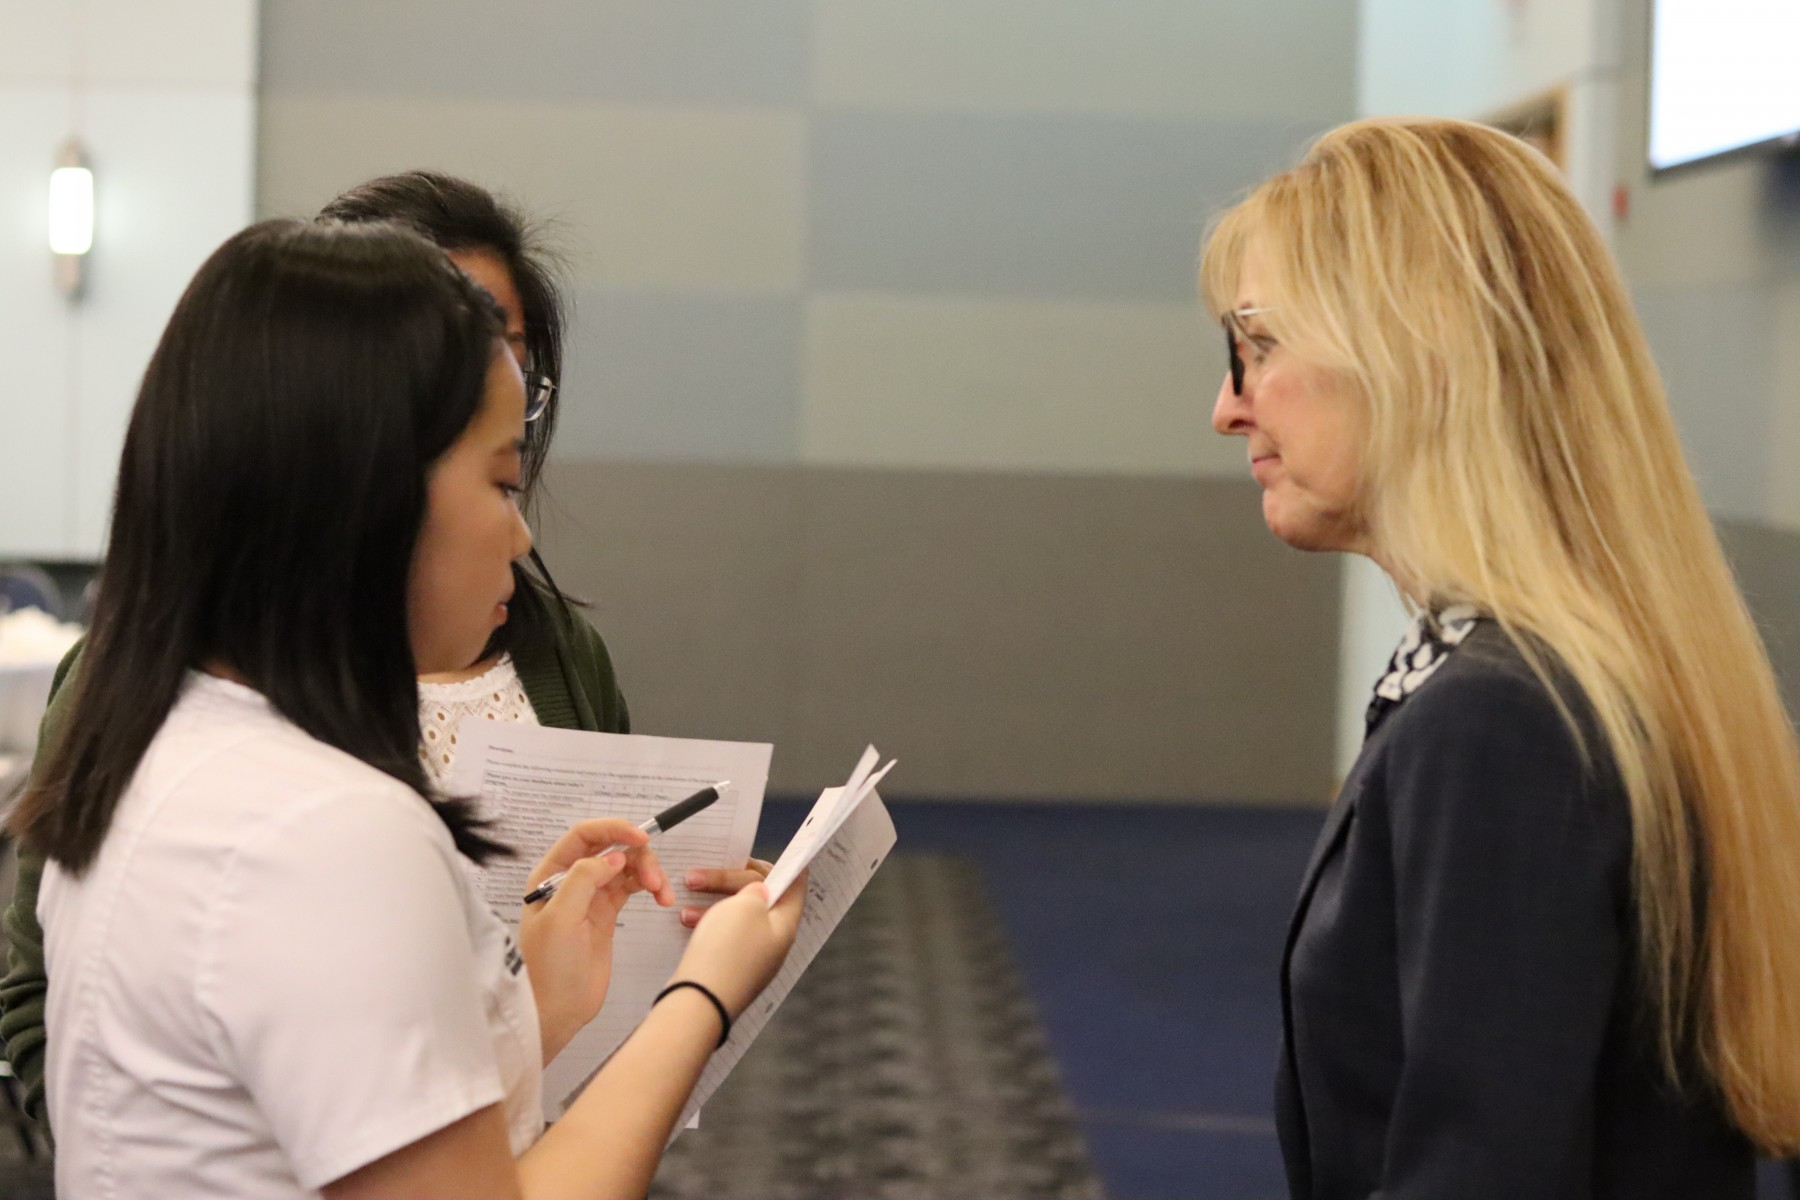 Heather Fitzgerald having a conversation with a nursing student.